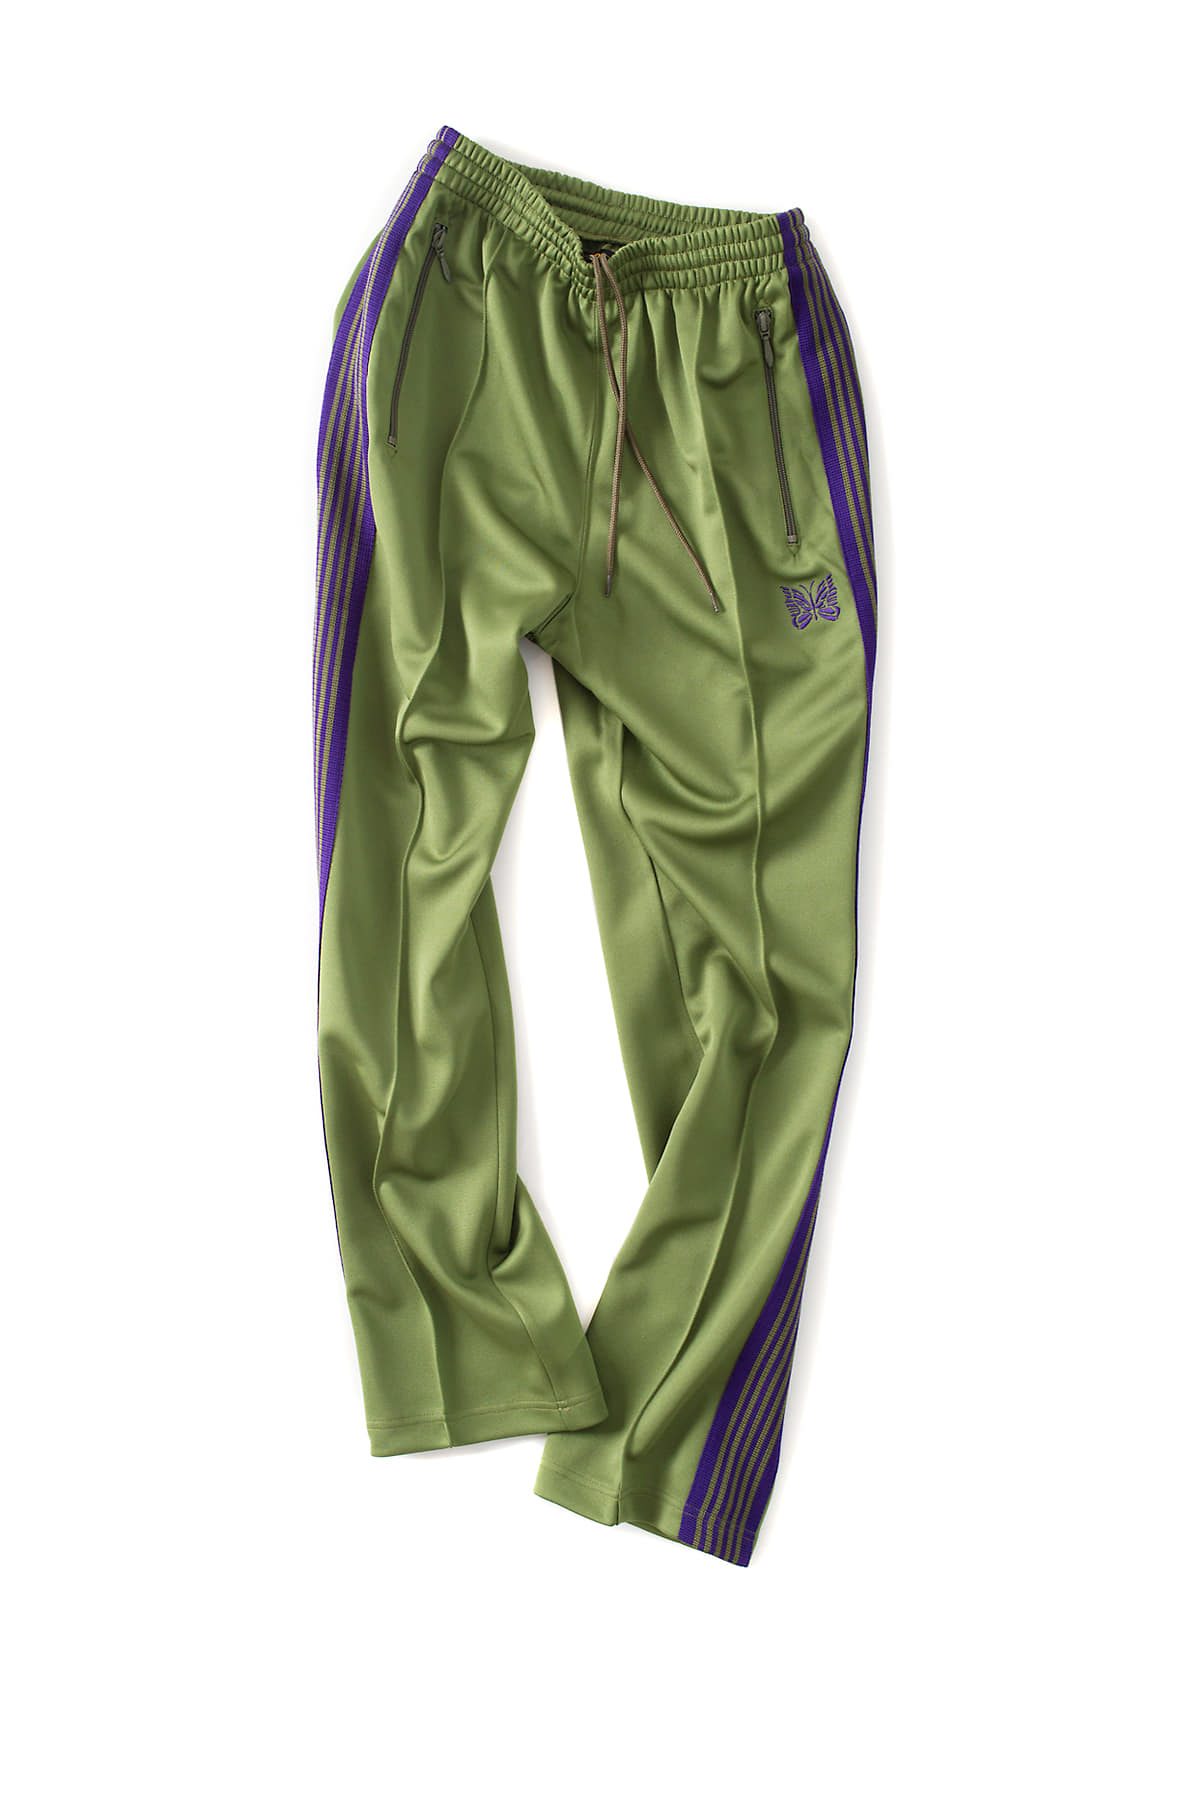 NEEDLES : Narrow Track Pant (Lt.Green)